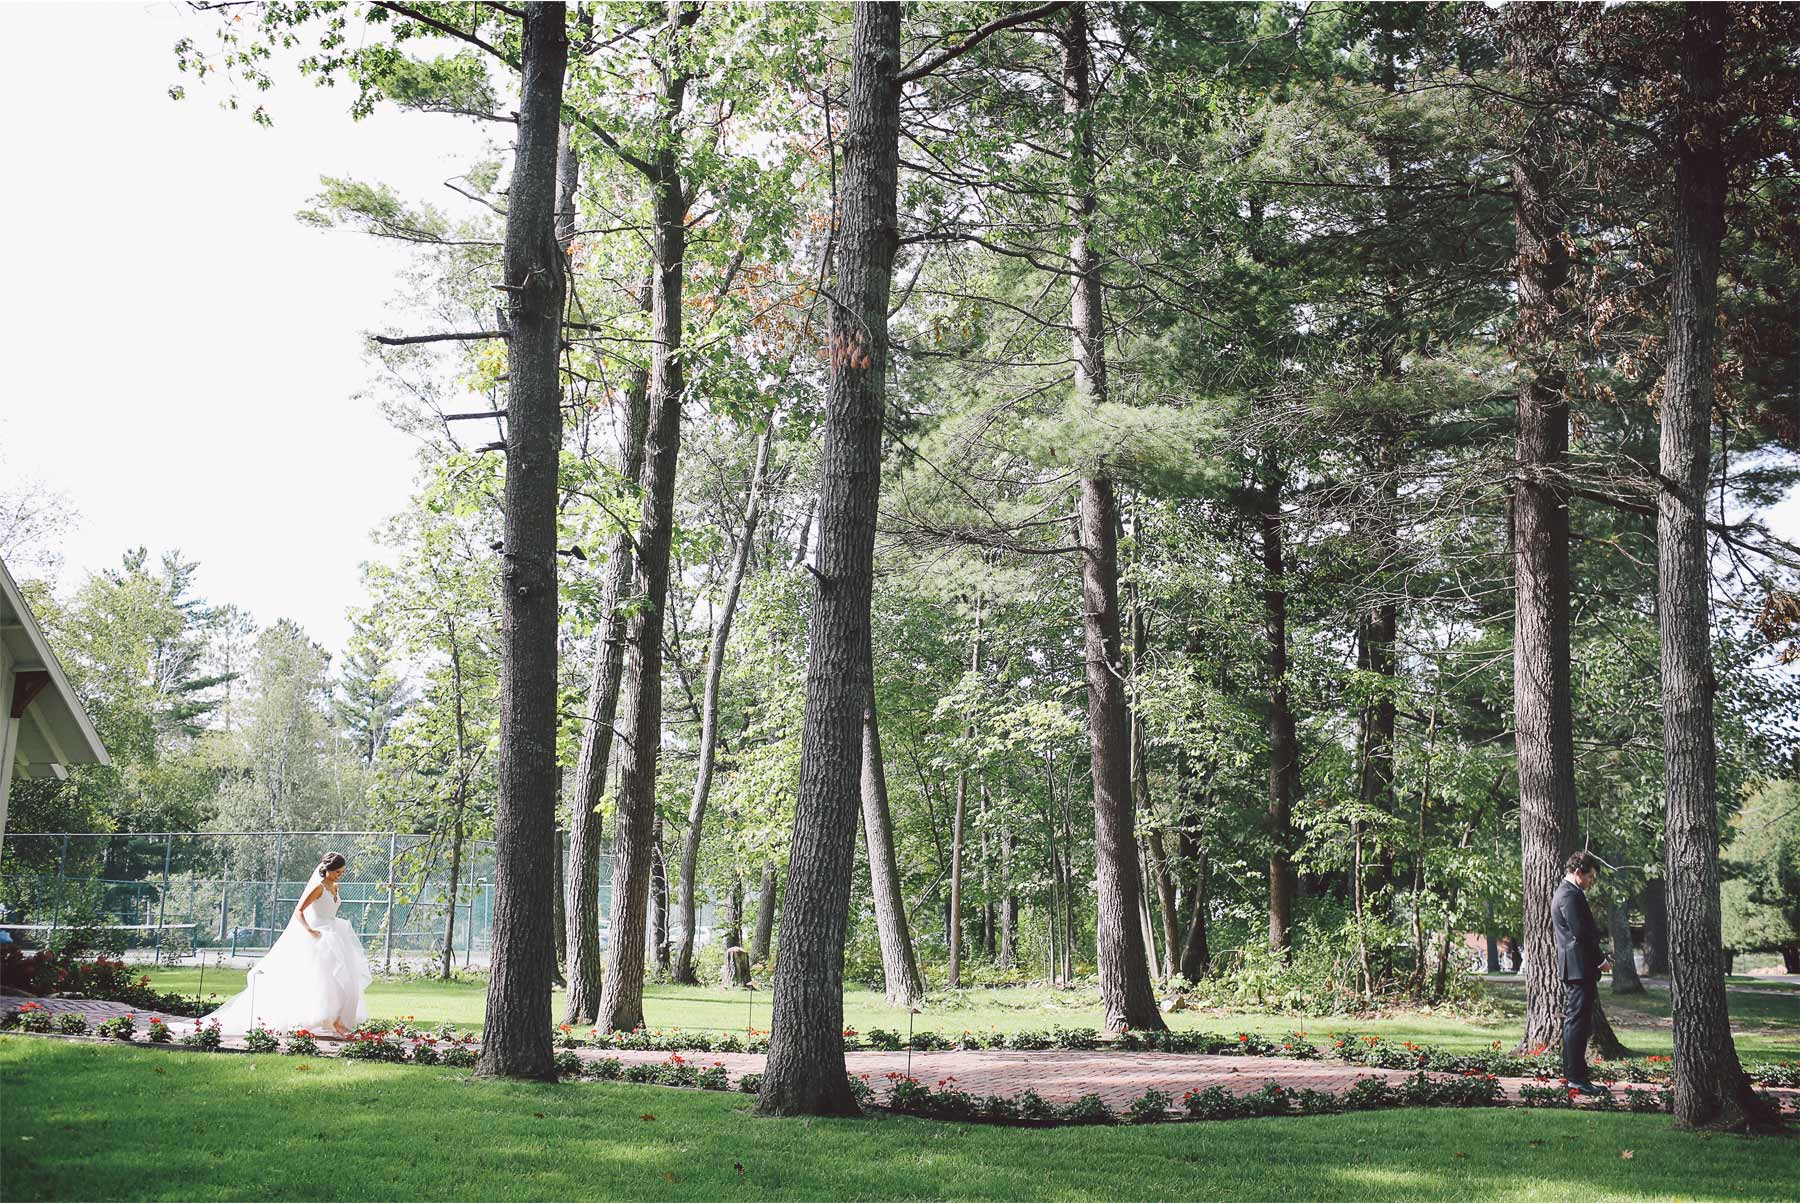 05-Brainerd-Minnesota-Wedding-Photography-by-Vick-Photography-Grand-View-Lodge-Woods-First-Look-Bethany-and-Anthony.jpg